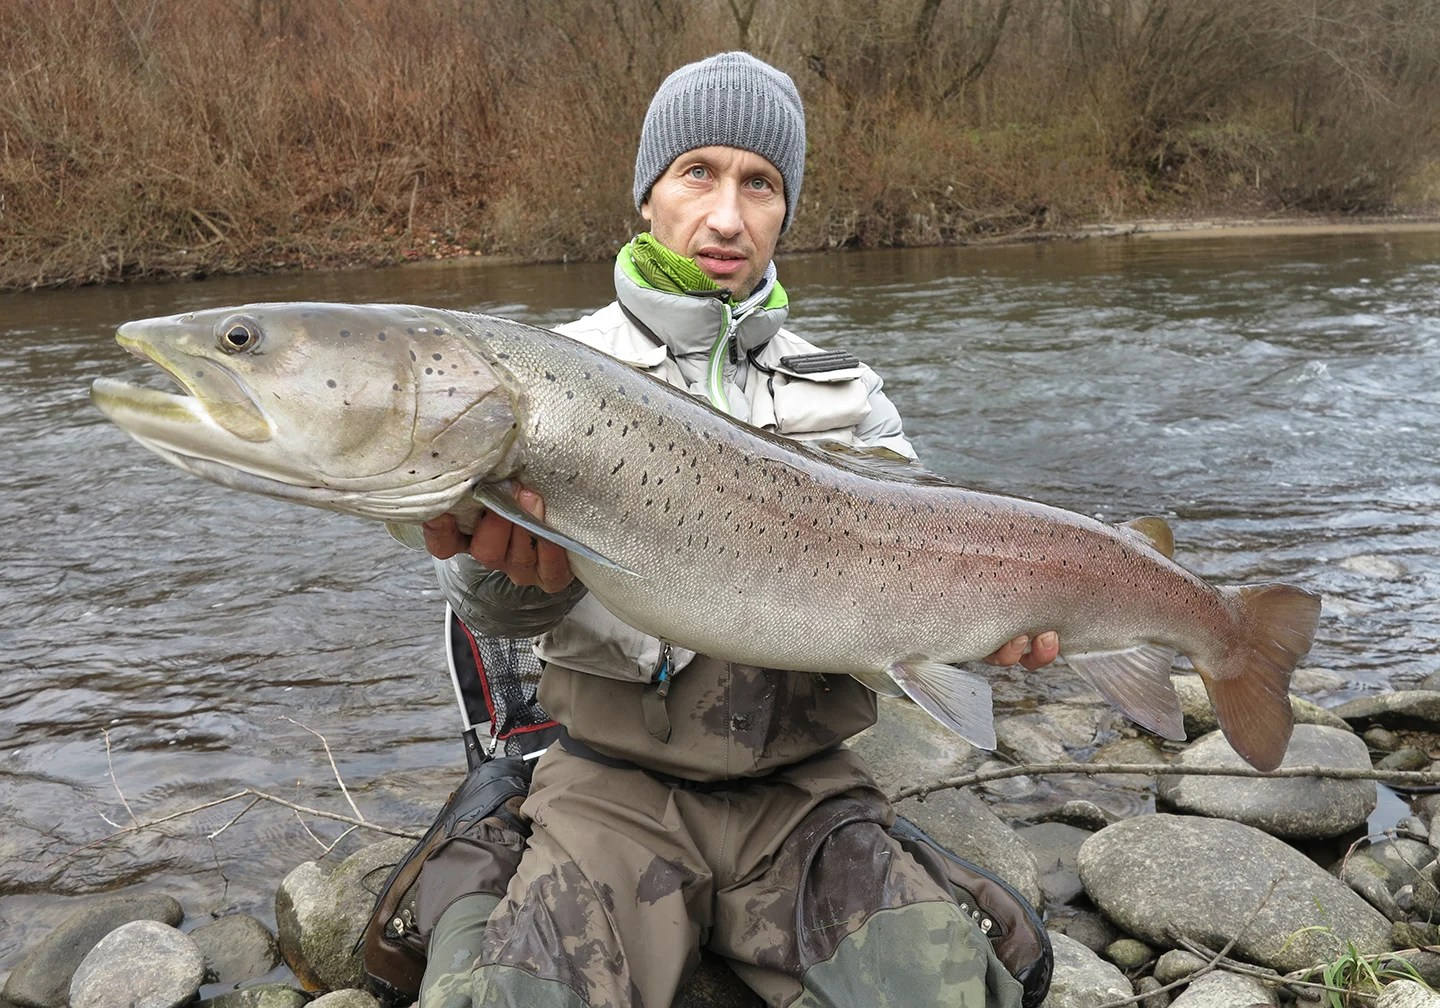 An angler in a winter hat and jacket holding a Huchen, also know as a Danube Salmon, near a river in Slovenia